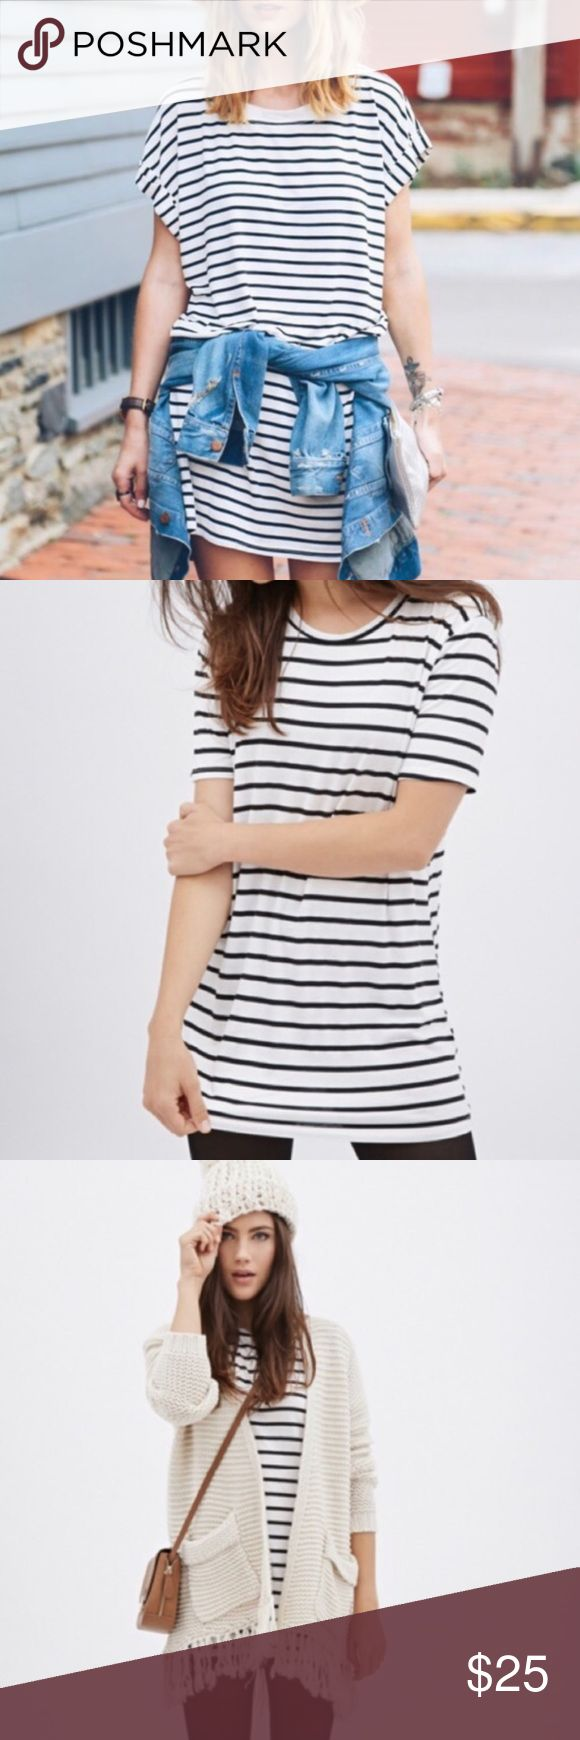 F21 Black + White Stripe T Shirt Dress F21 Striped TShirt Dress | Stripe T Shirt Dress in Black + White  Short sleeves  Round neckline  Classic stripe   73% polyester, 23% rayon, 4% spandex  Hand wash cold Forever 21 Dresses Mini